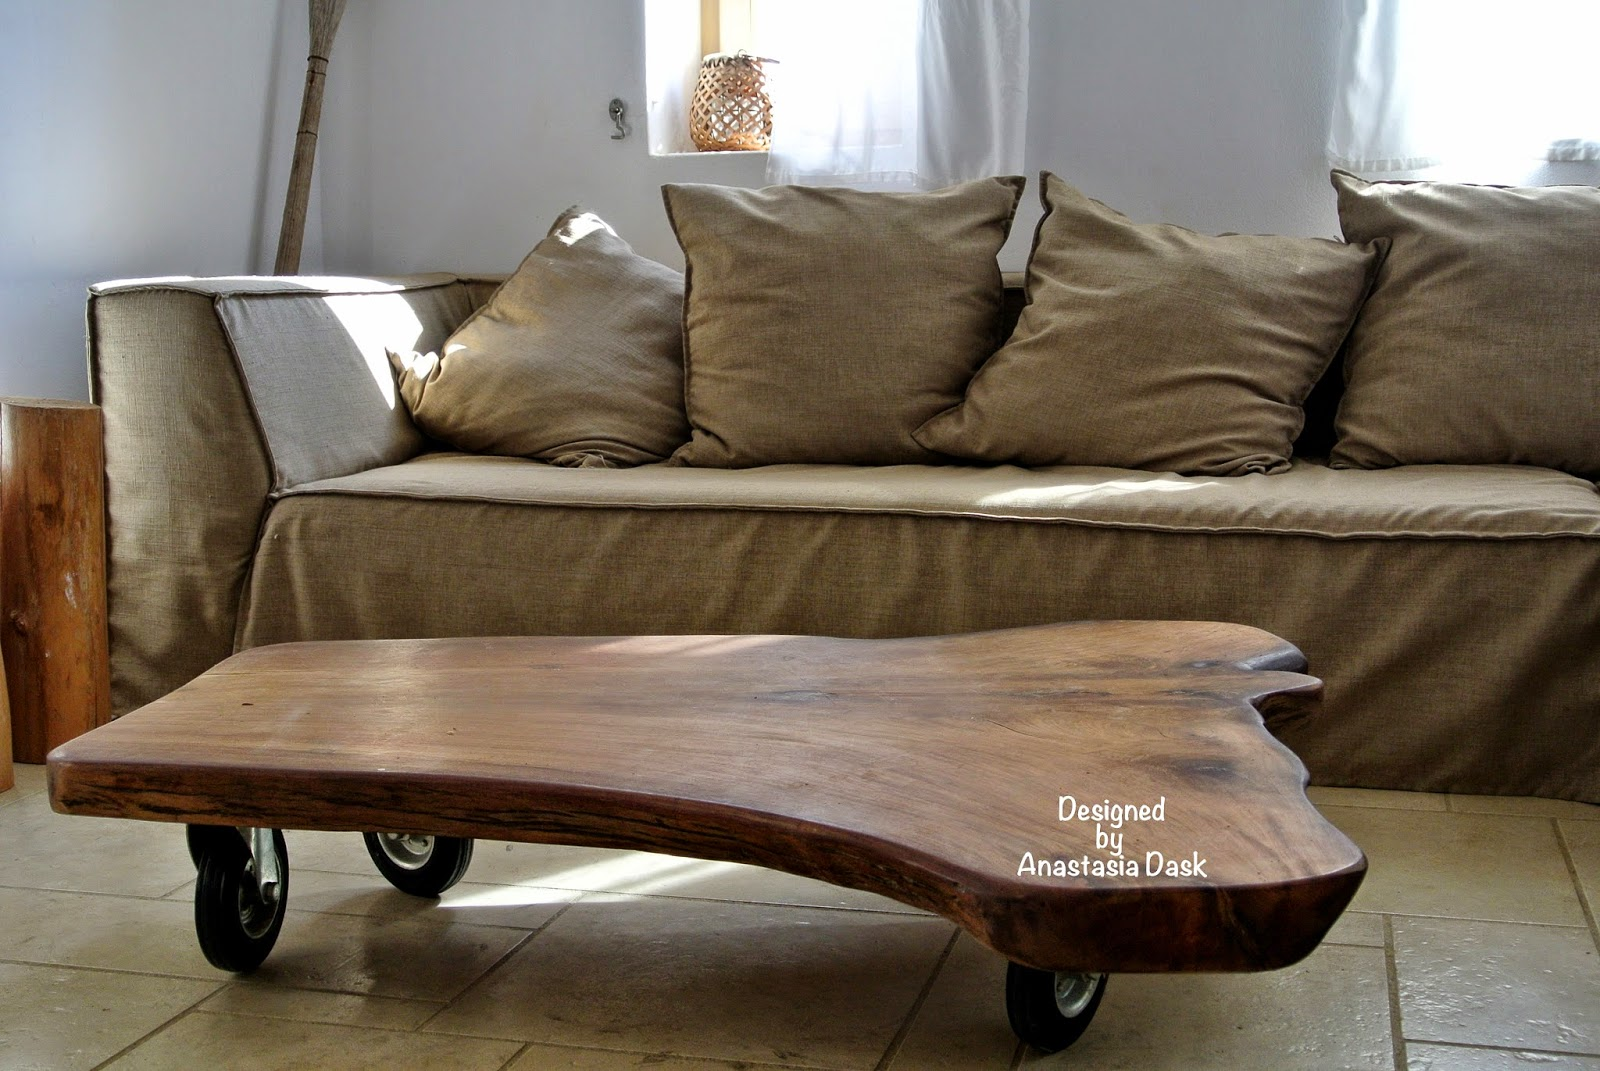 Today Iu0027m Sharing With You A Coffee Table I Made For House A In Milos  Project.It Is A Solid Piece Of Wood With Big Wheels. I Also Used Tree  Blocks As Side ...